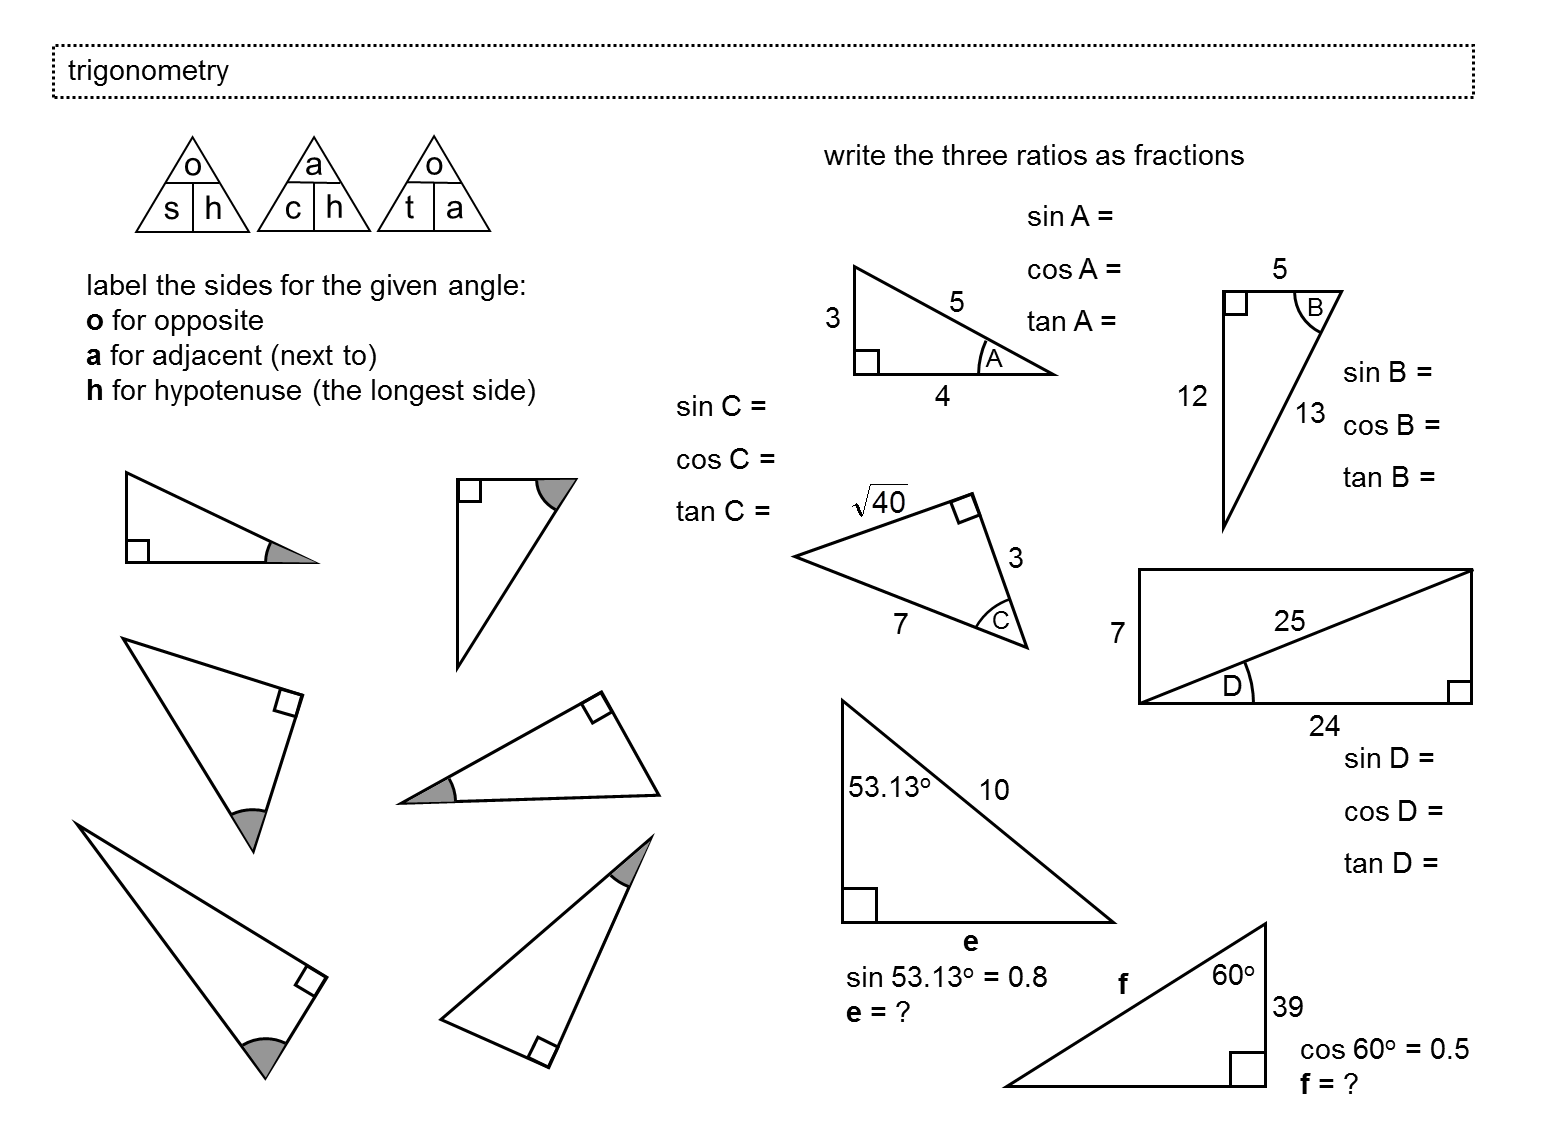 Trigonometry in RightAngled Triangles – Trigonometry Practice Worksheets